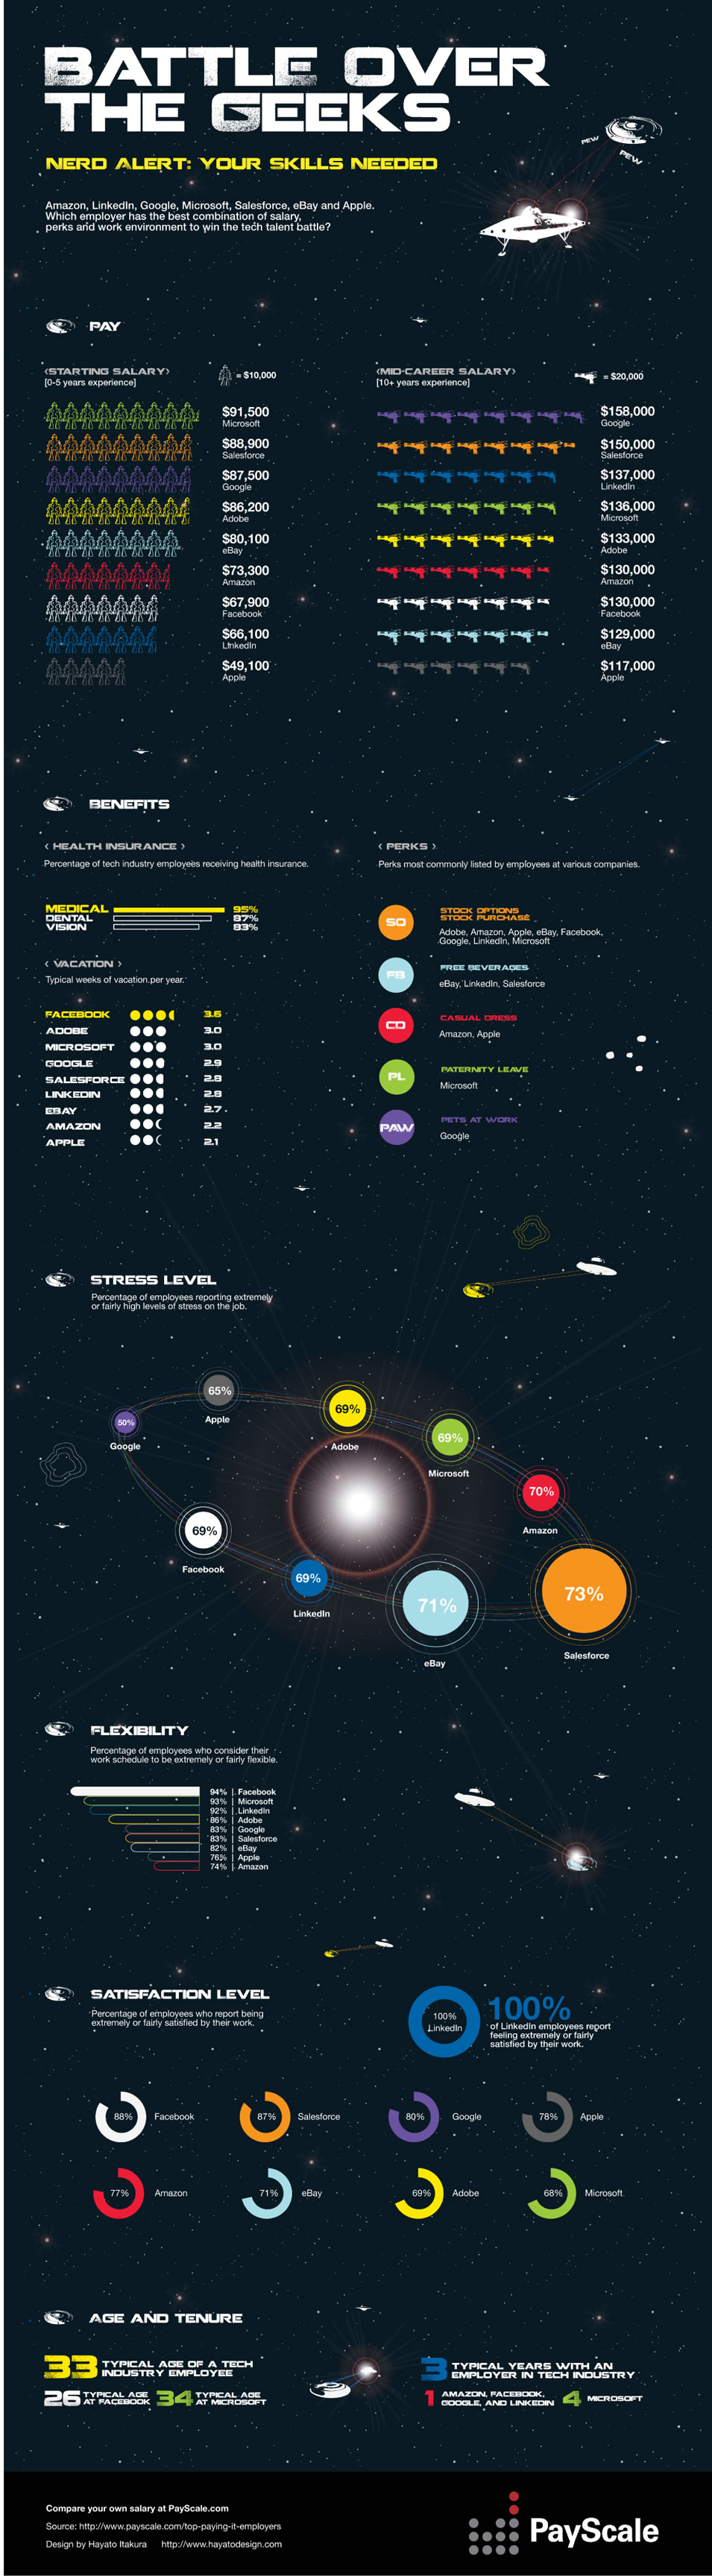 Battle-Over-The-Geeks-infographic